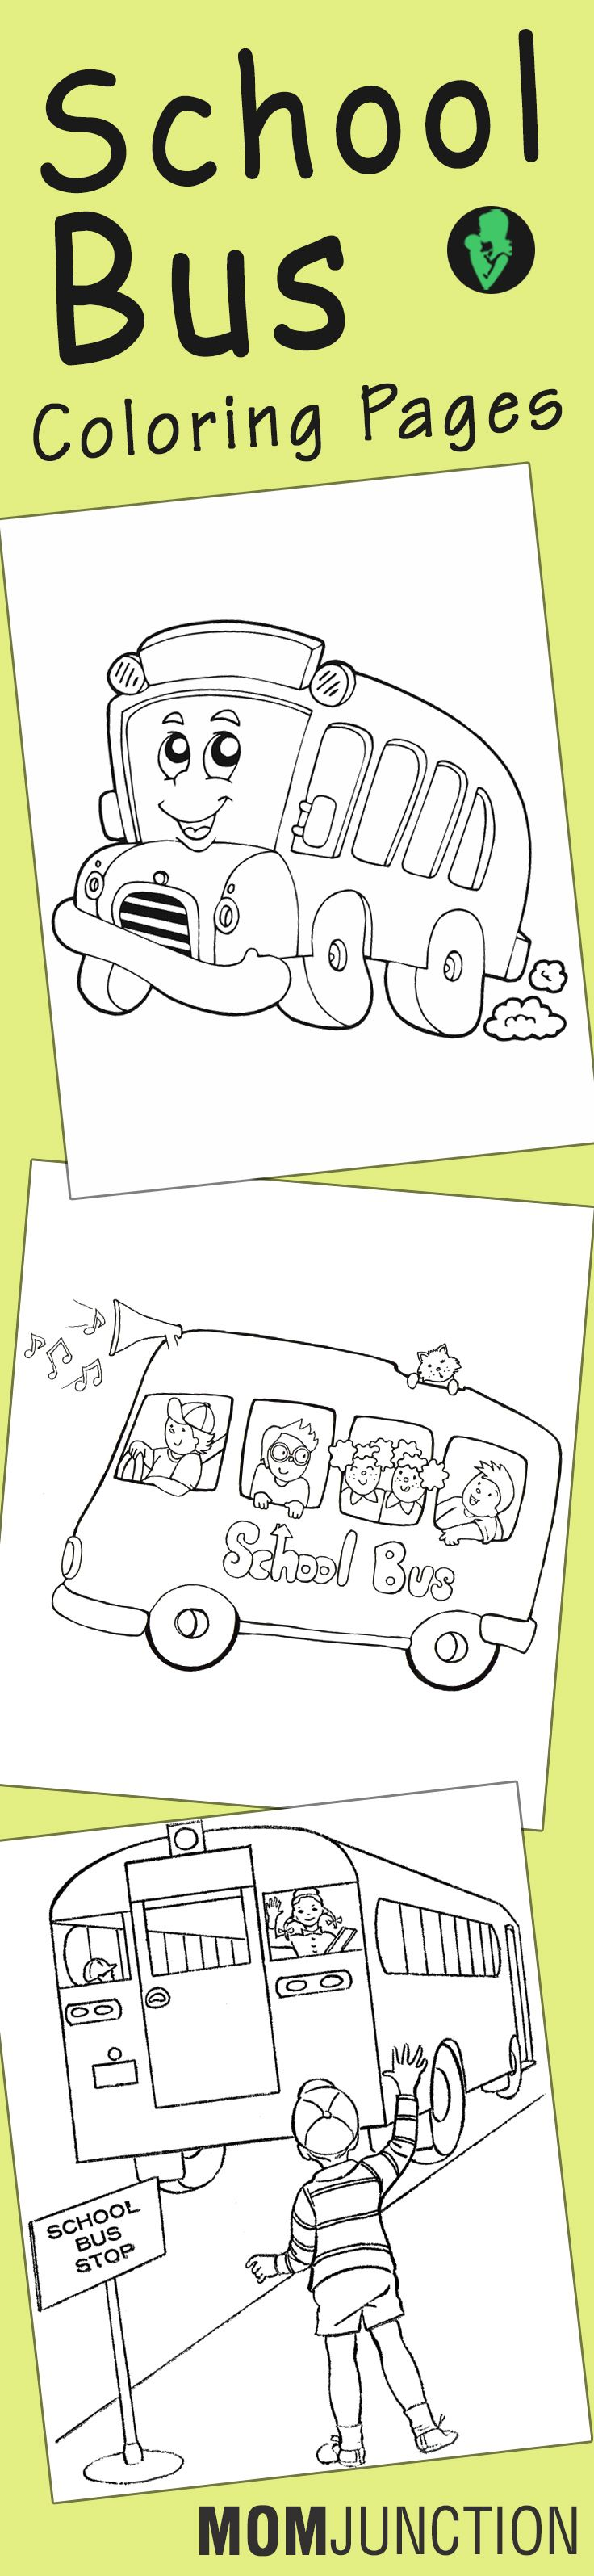 Top 10 School Bus Coloring Pages For Your Little Ones